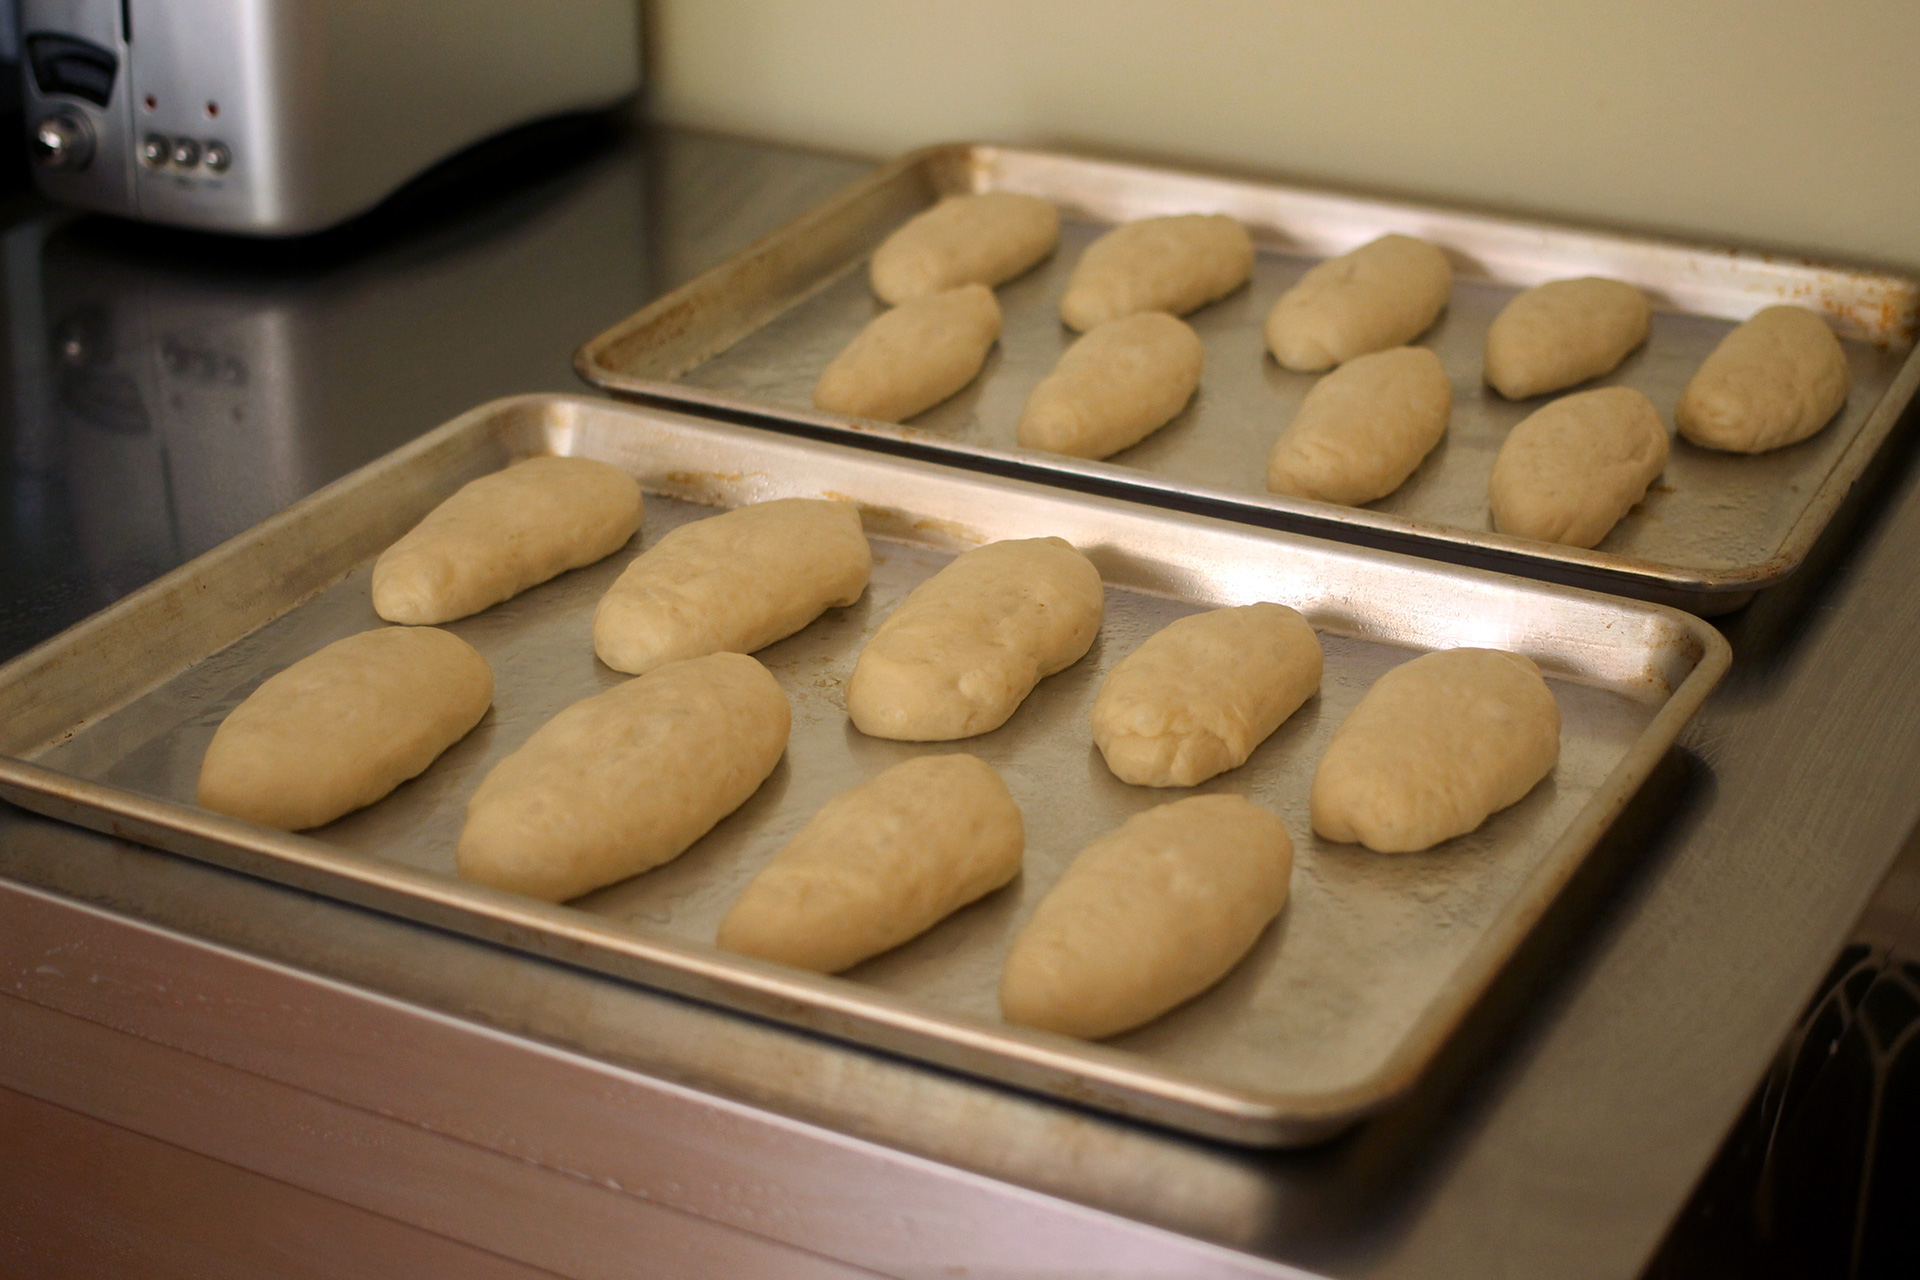 After rolling the balls into cylinders, place them on parchment-lined baking sheets — not greased sheets as you see above. (The buns will stick!)